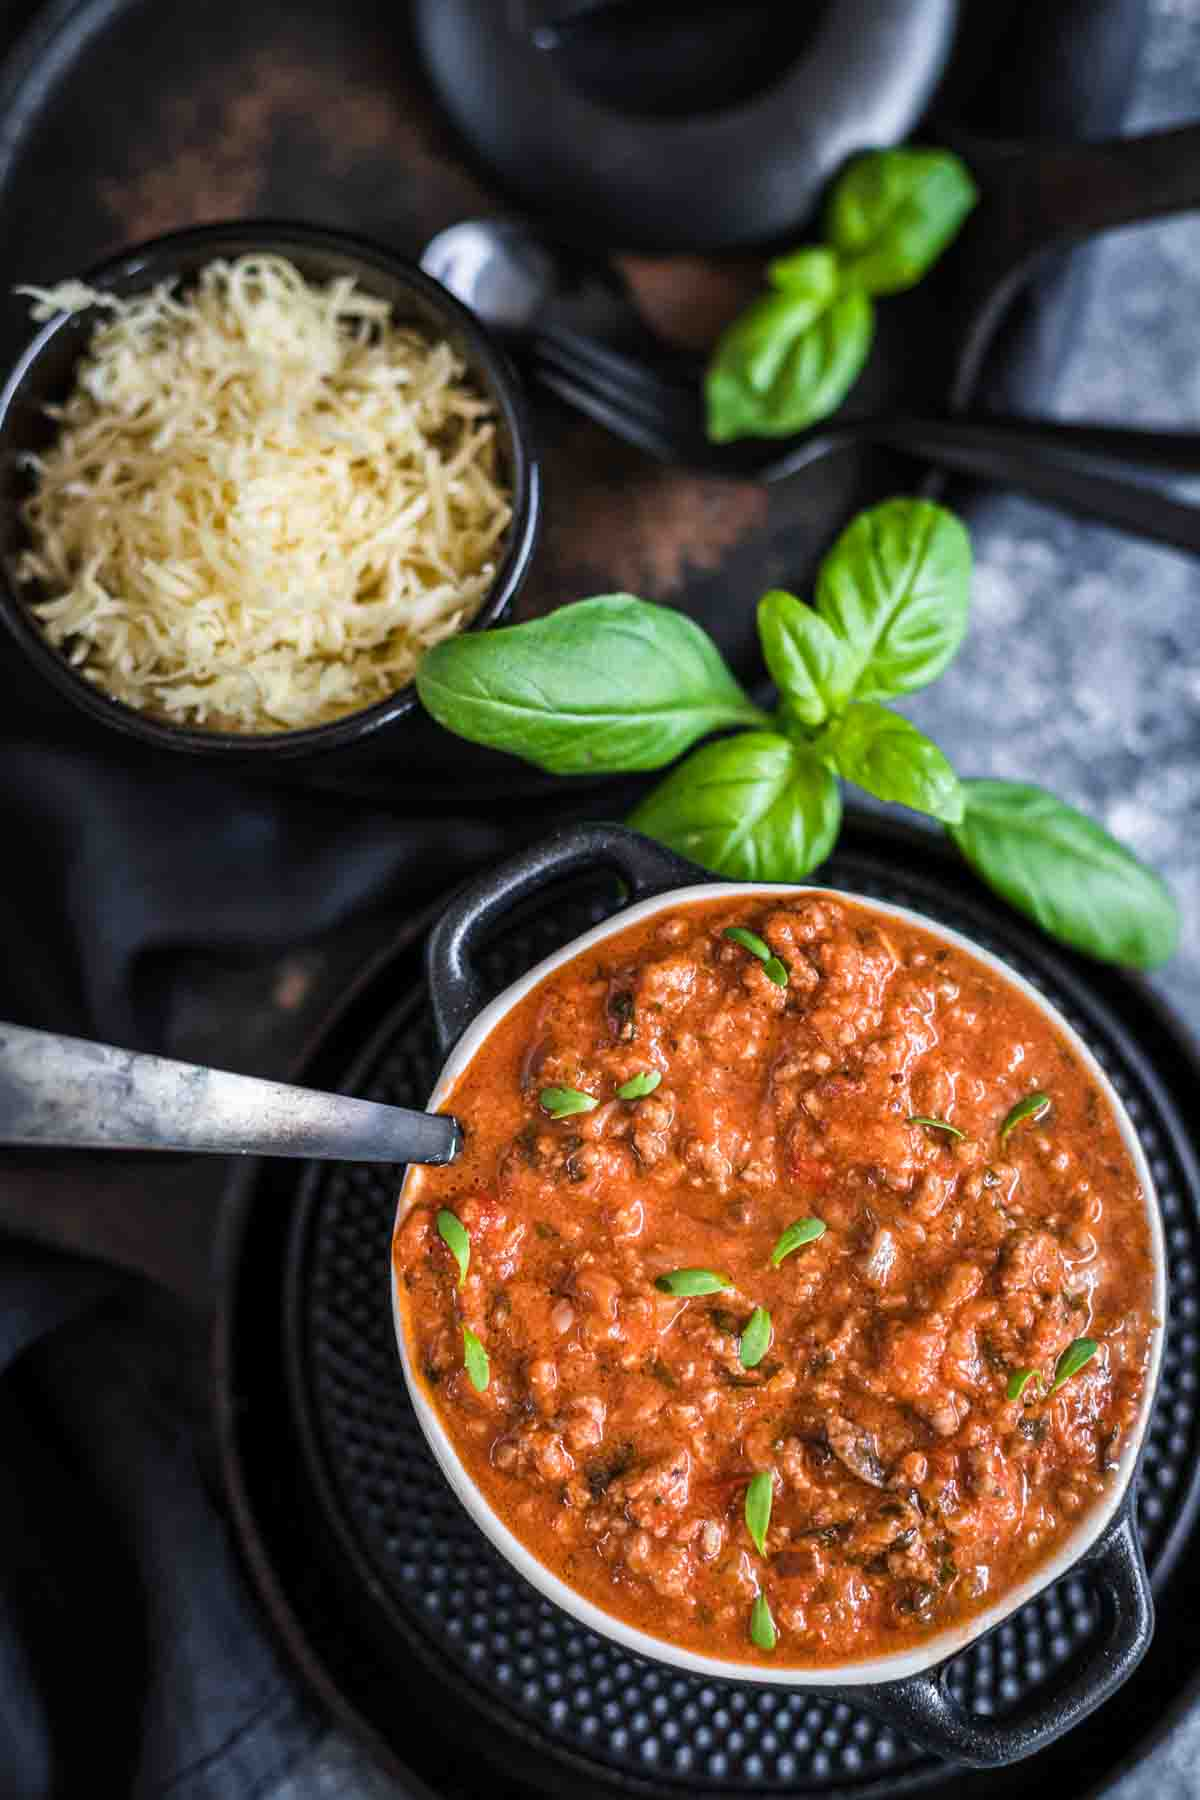 Keto Beef Bolognese ready to serve in a dark bowl